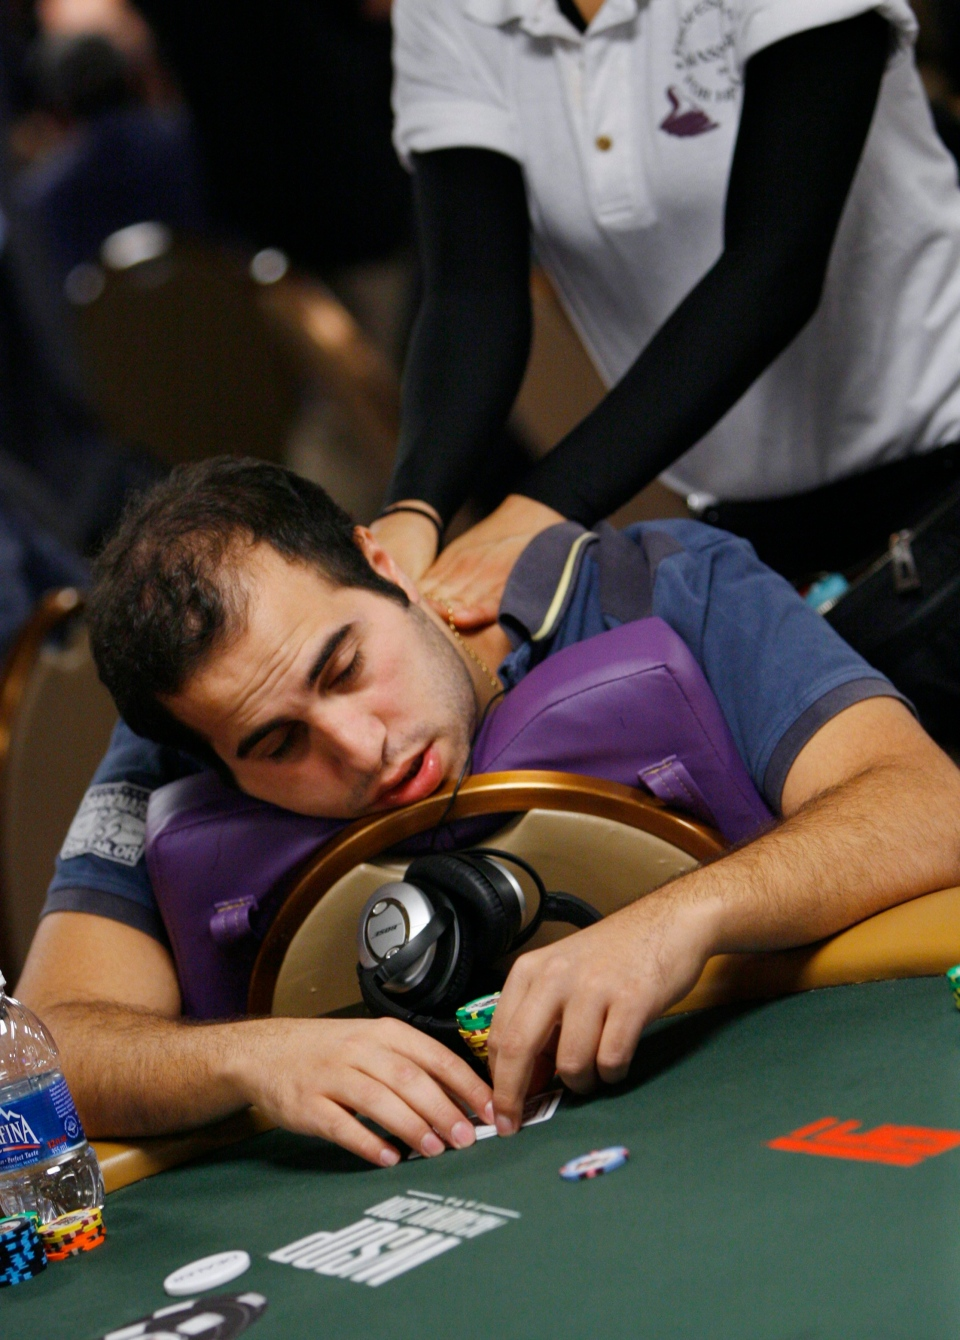 Nicholas Shouiti of Lebanon gets a massage while playing a hand in the first round on opening day of the World Series of Poker in Las Vegas on Monday, July 5, 2010. (Laura Rauch/AP Photo)